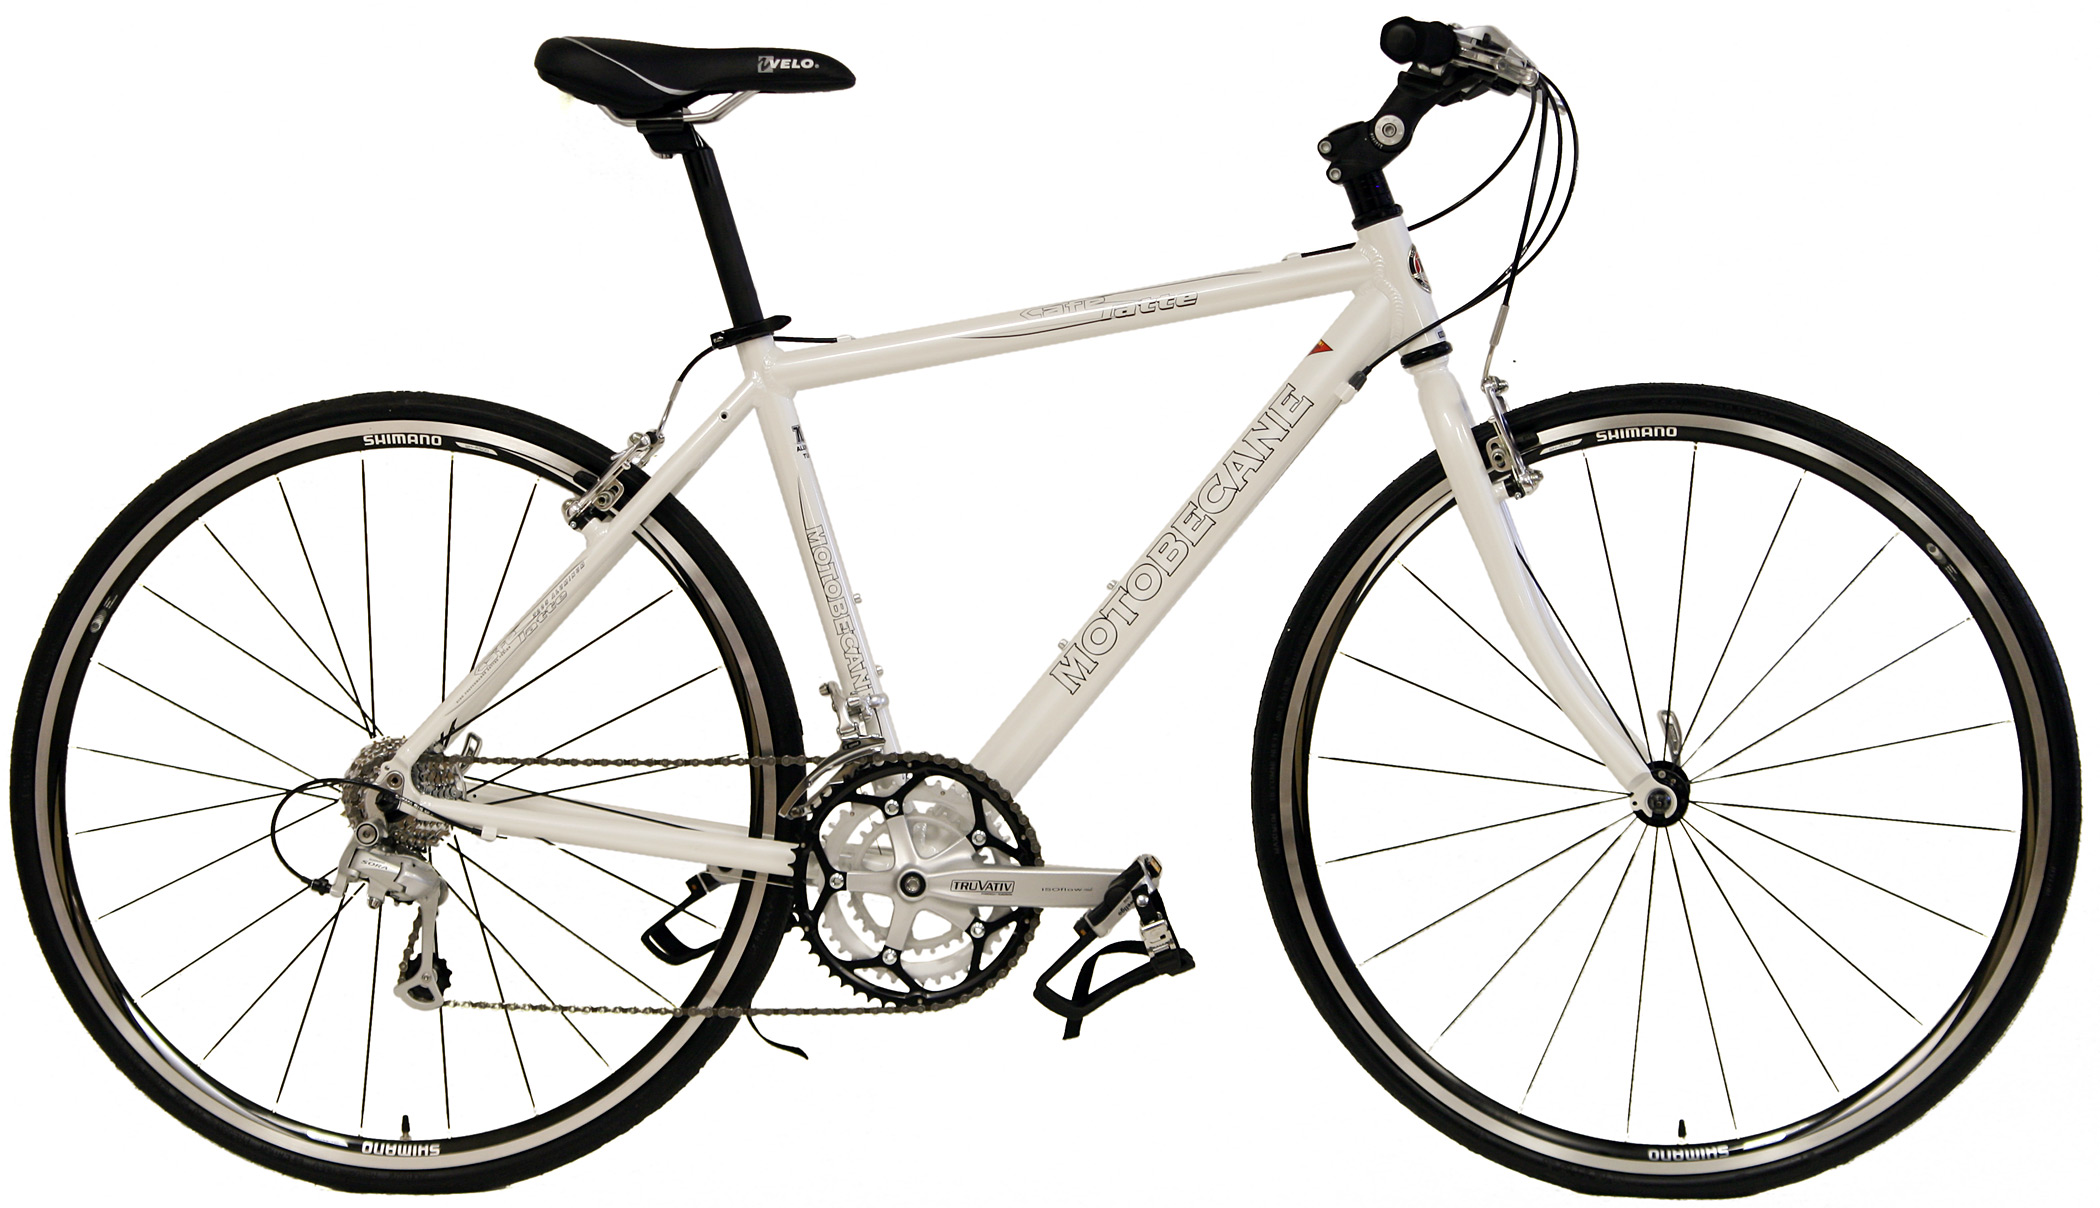 Bikesdirect Motobecane Reviews Road Bikes Motobecane Cafe